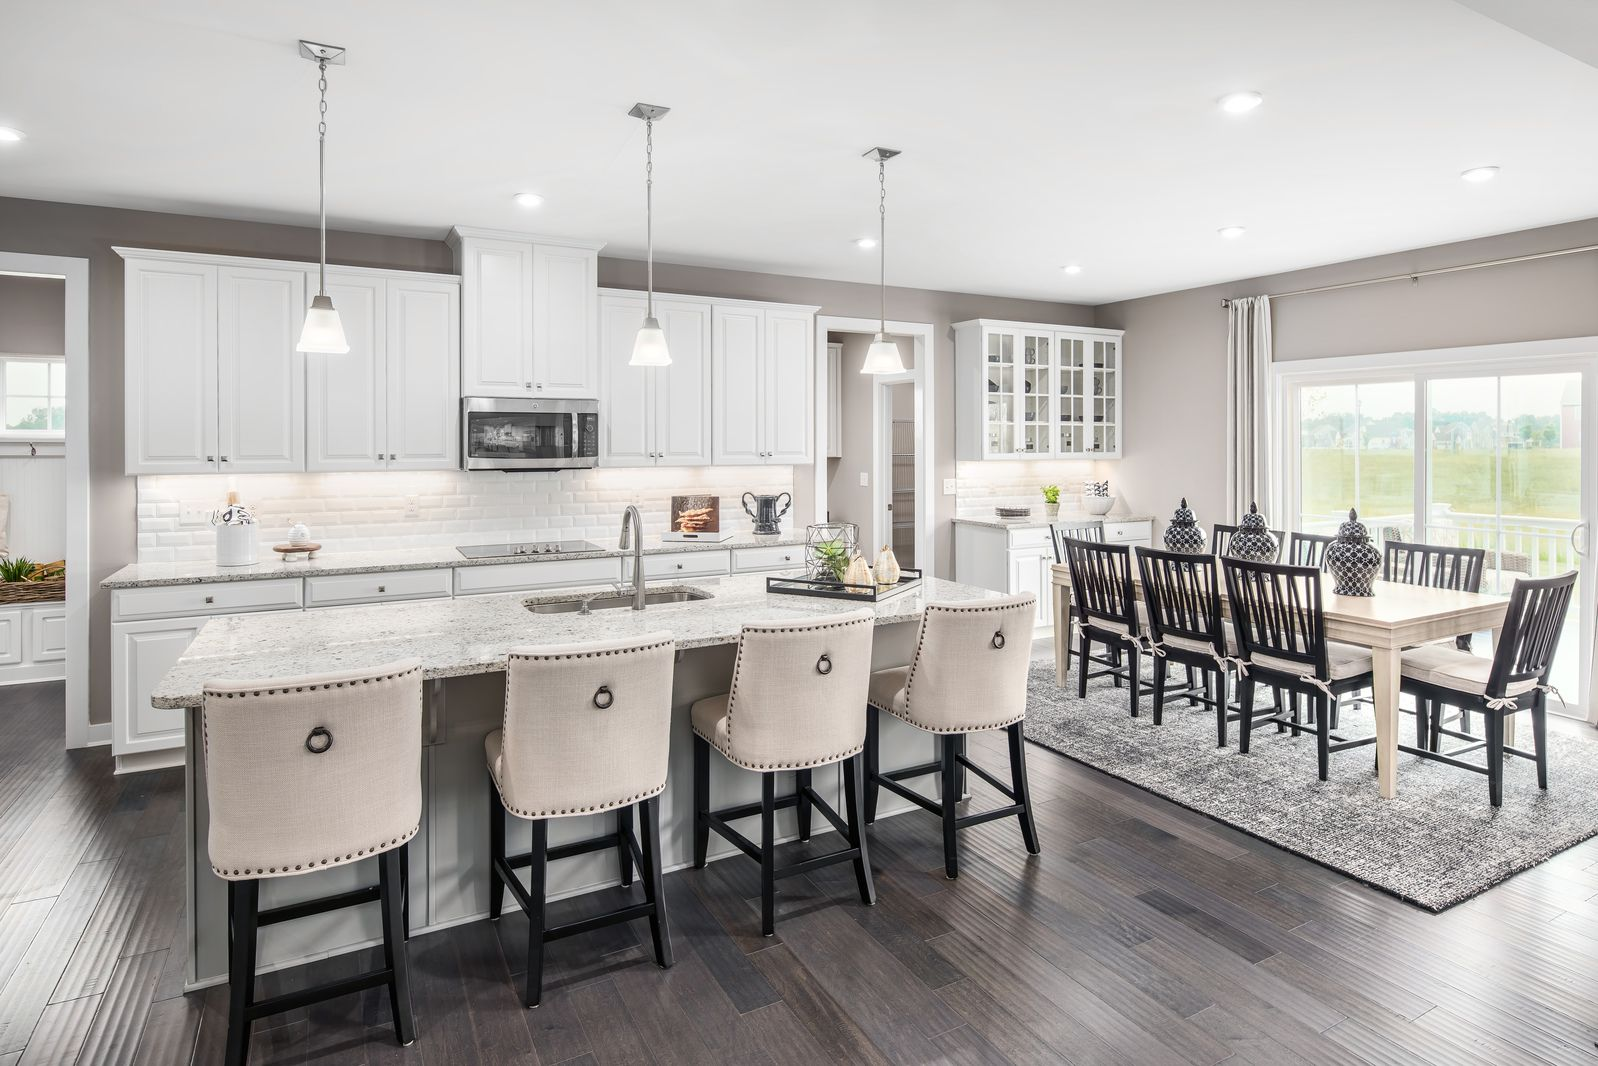 Kitchen featured in the Versailles By Ryan Homes in Washington, MD